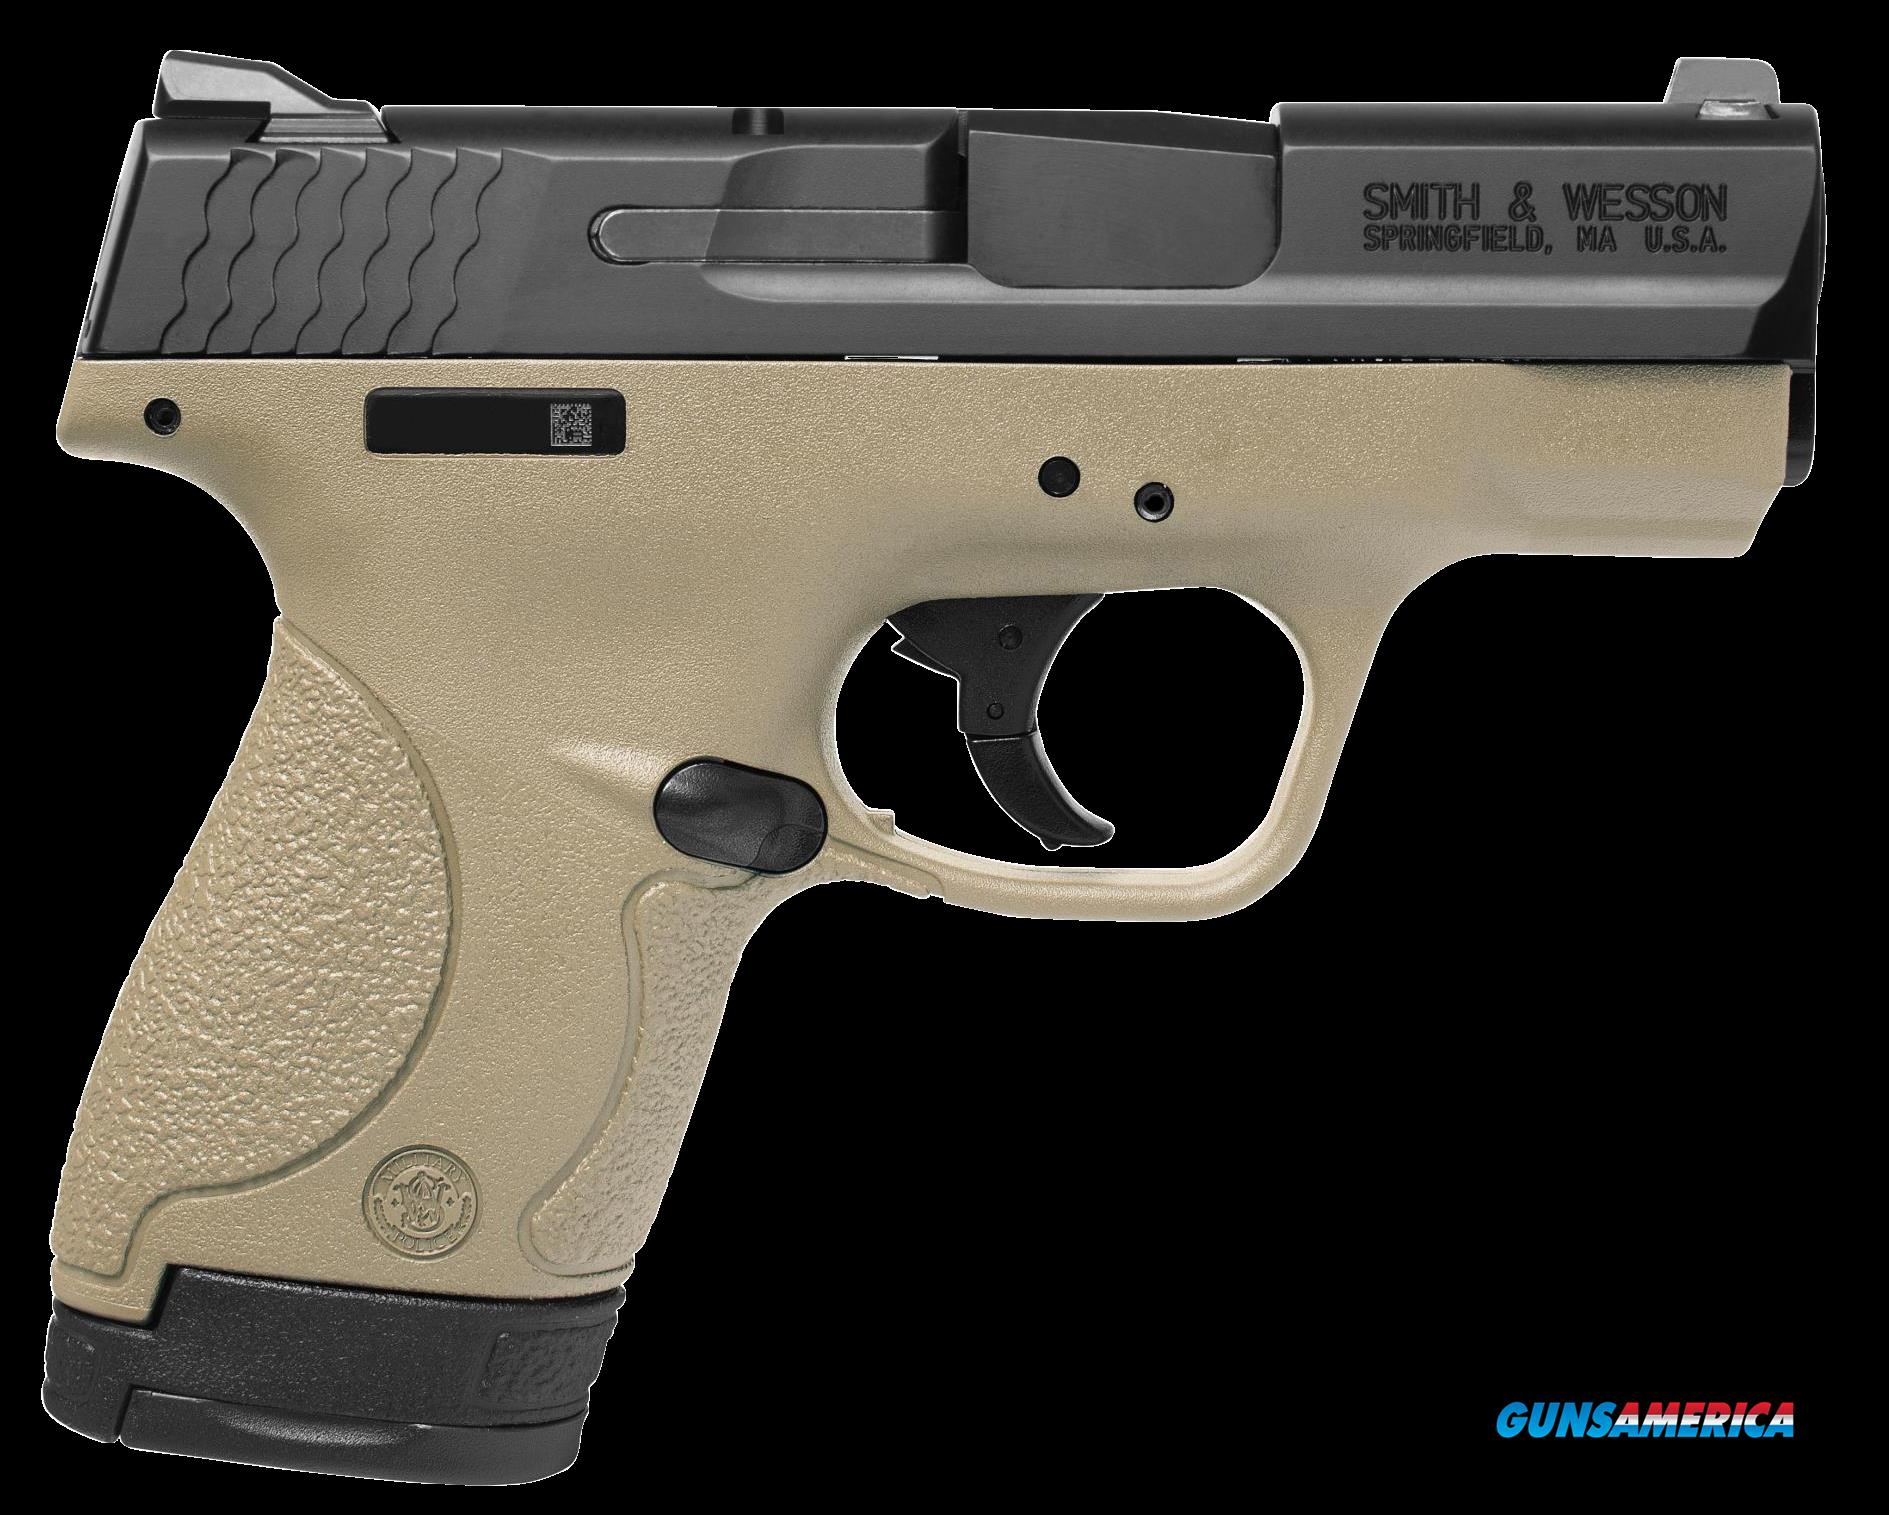 "Smith & Wesson 10303 M&P 9 Shield Double 9mm Luger 3.1"" 7+1/8+1 Flat Dark Earth Polymer Grip/Frame  Guns > Pistols > S Misc Pistols"